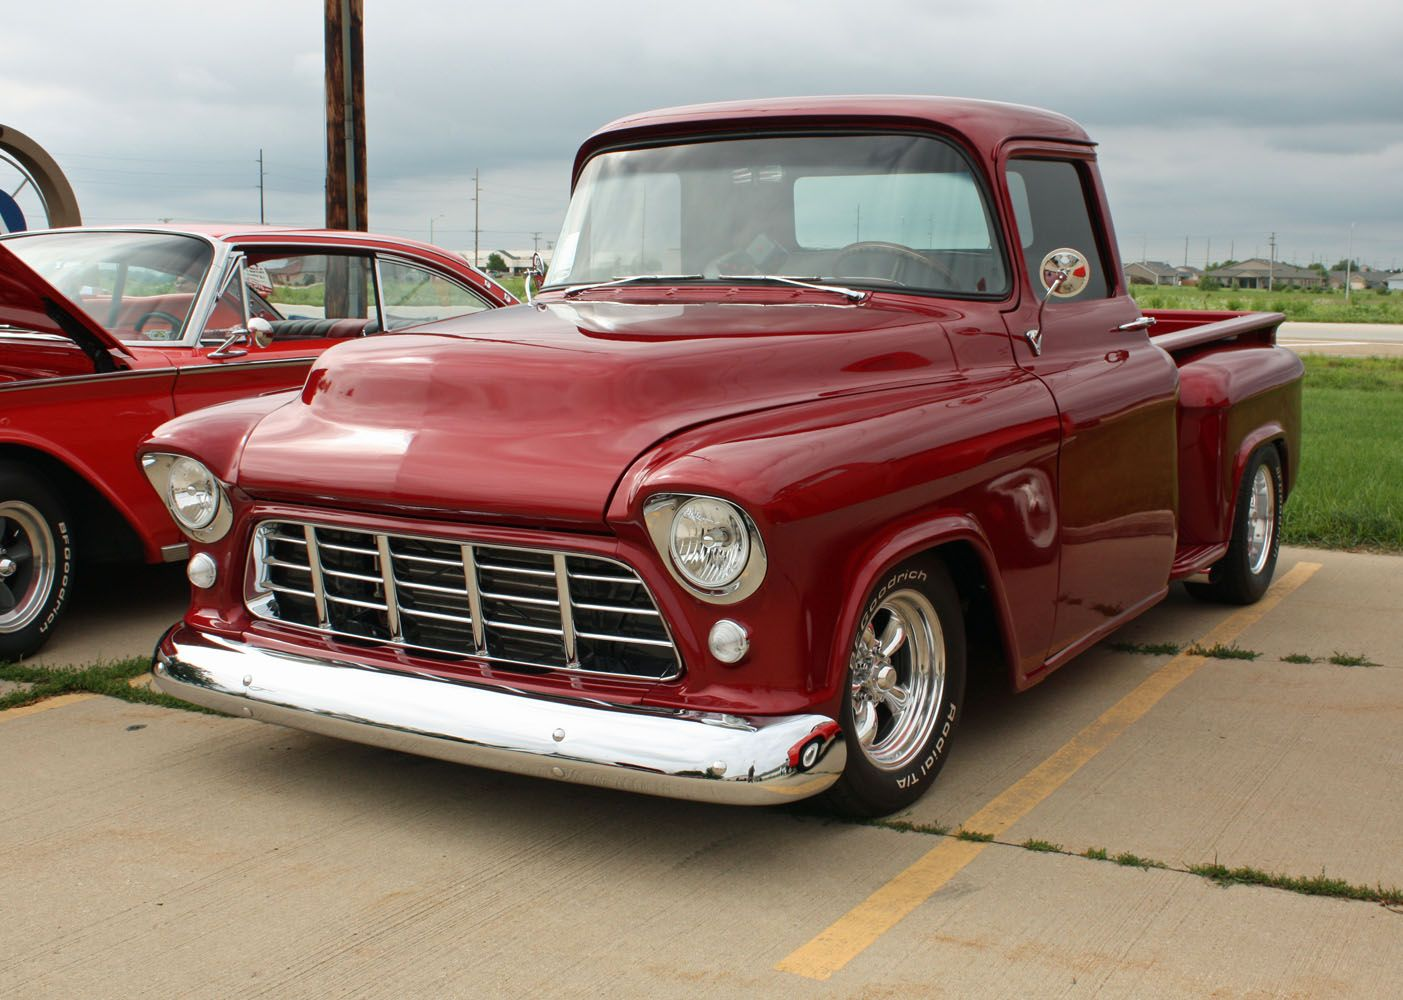 1955 Second Series Chevy Gmc Pickup Truck 57 Chevy Trucks Chevy